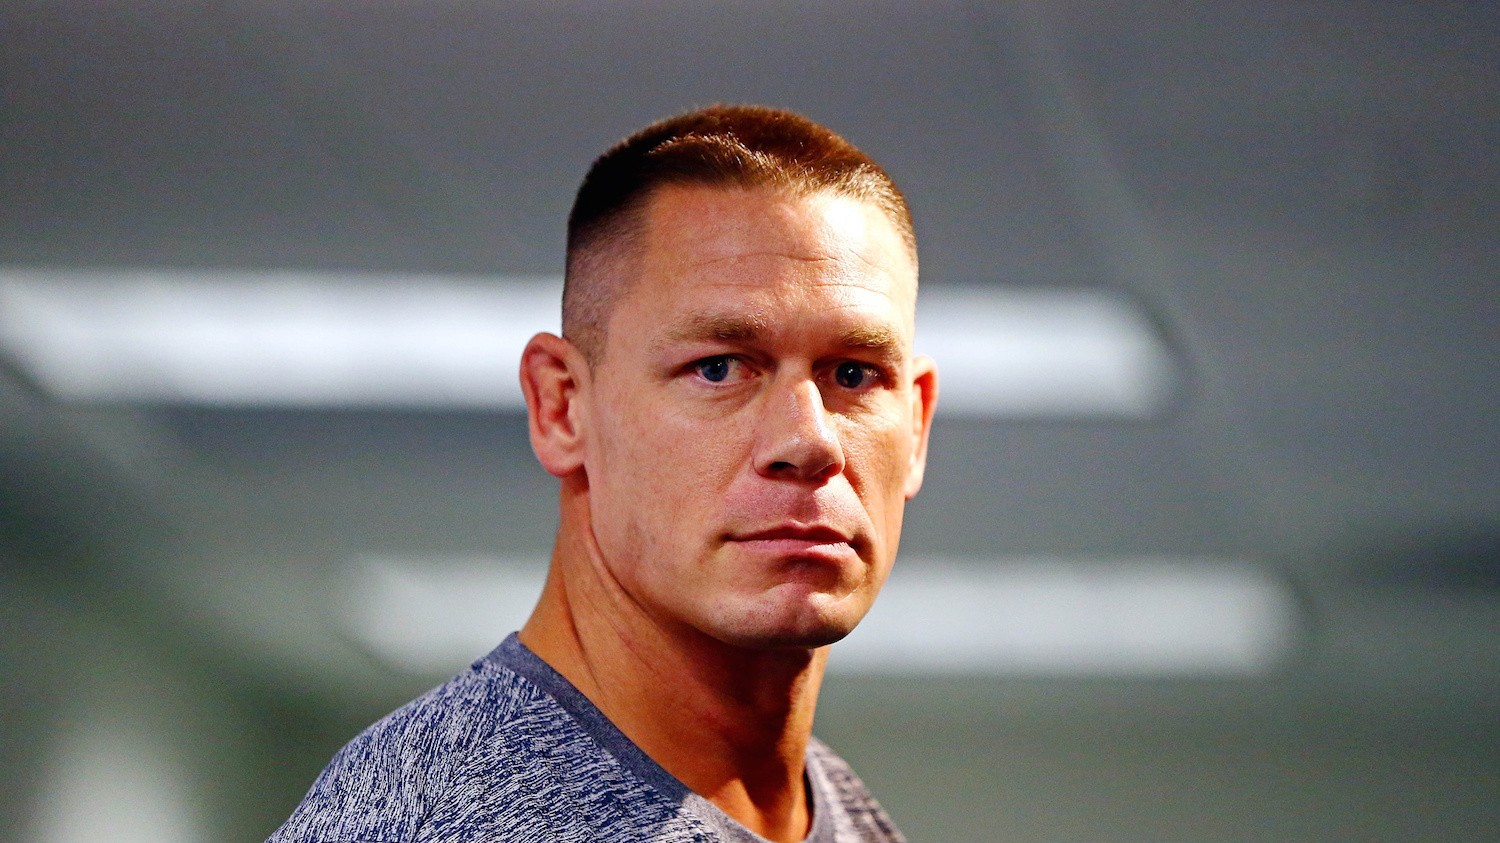 What to Make of John Cena, WWE's 16-Time World Champion